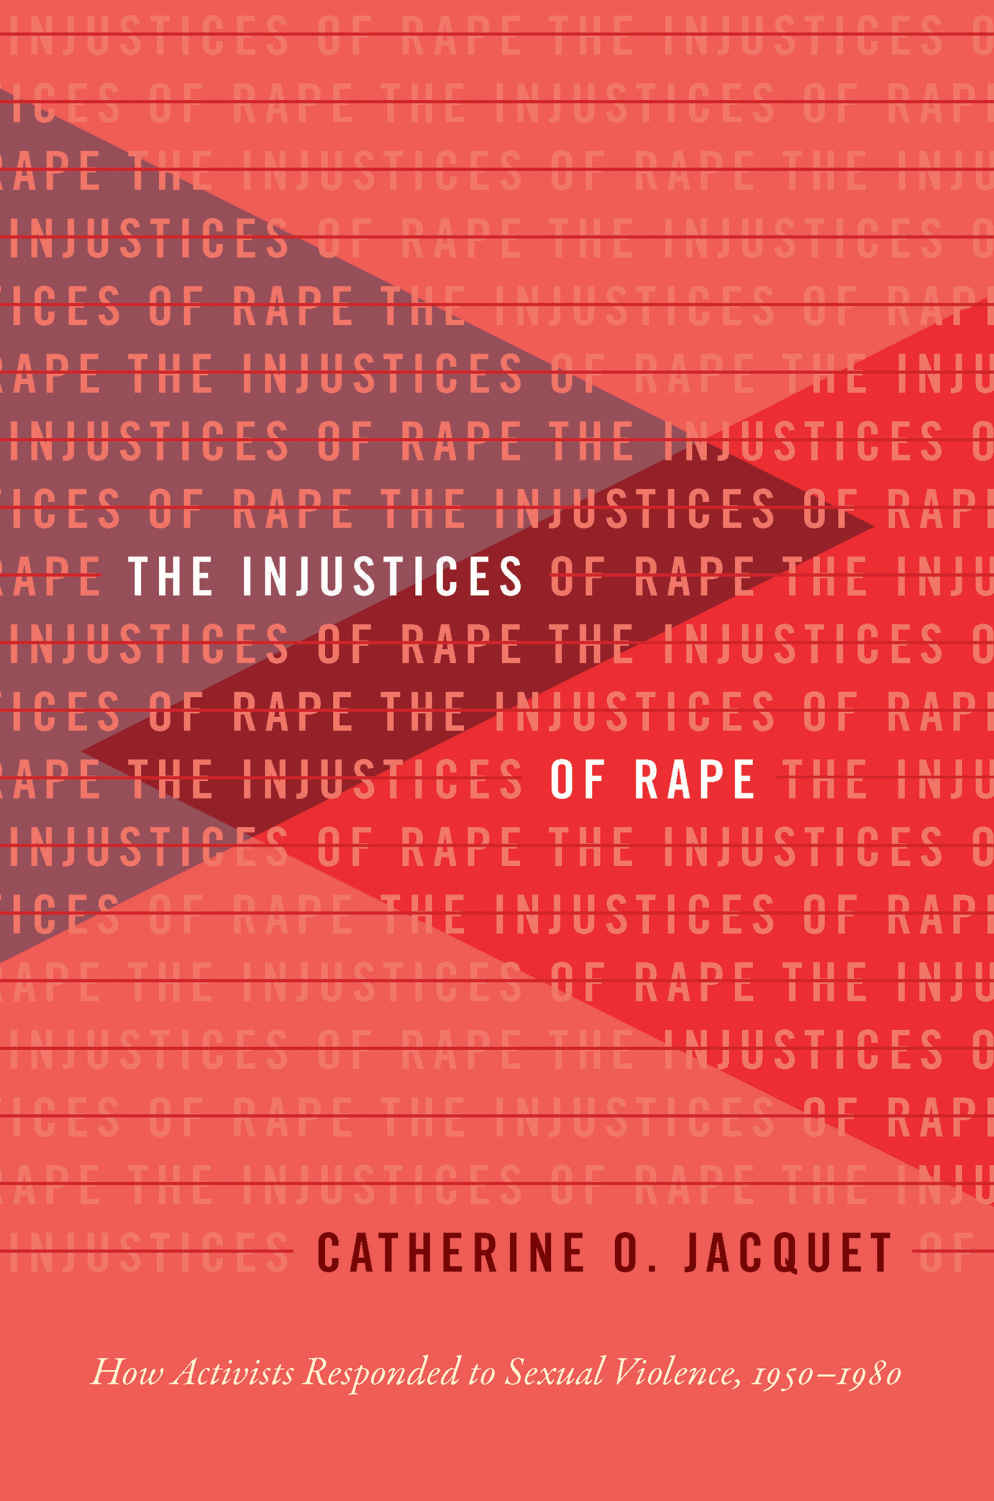 Book cover for The Injustices of Rape: How Activists Responded to Sexual Violence, 1950-1980